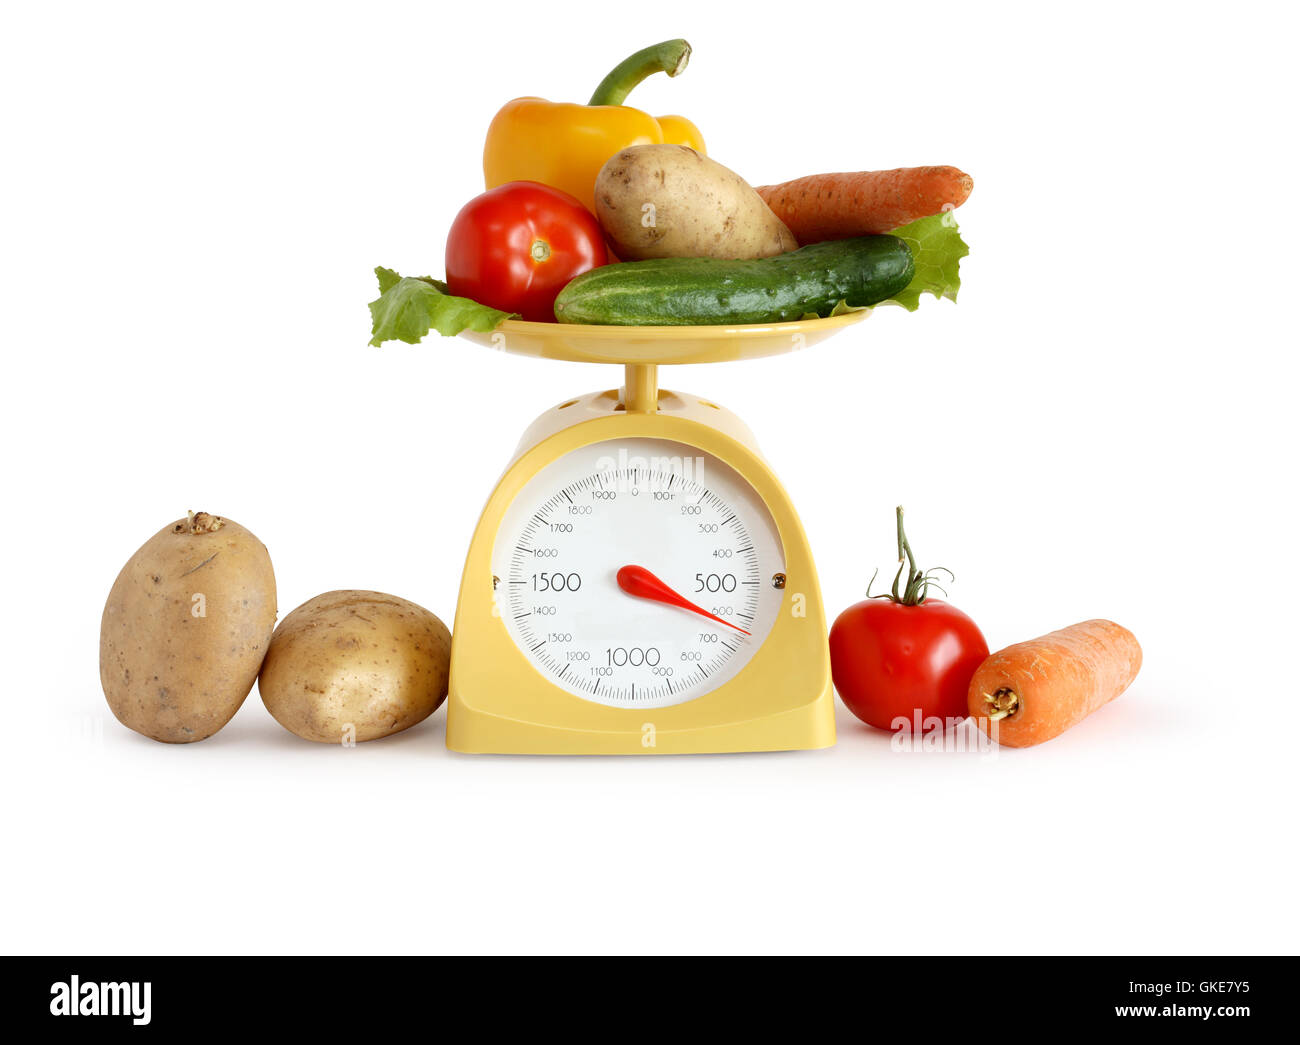 Vegetables On Weight Scale - Stock Image